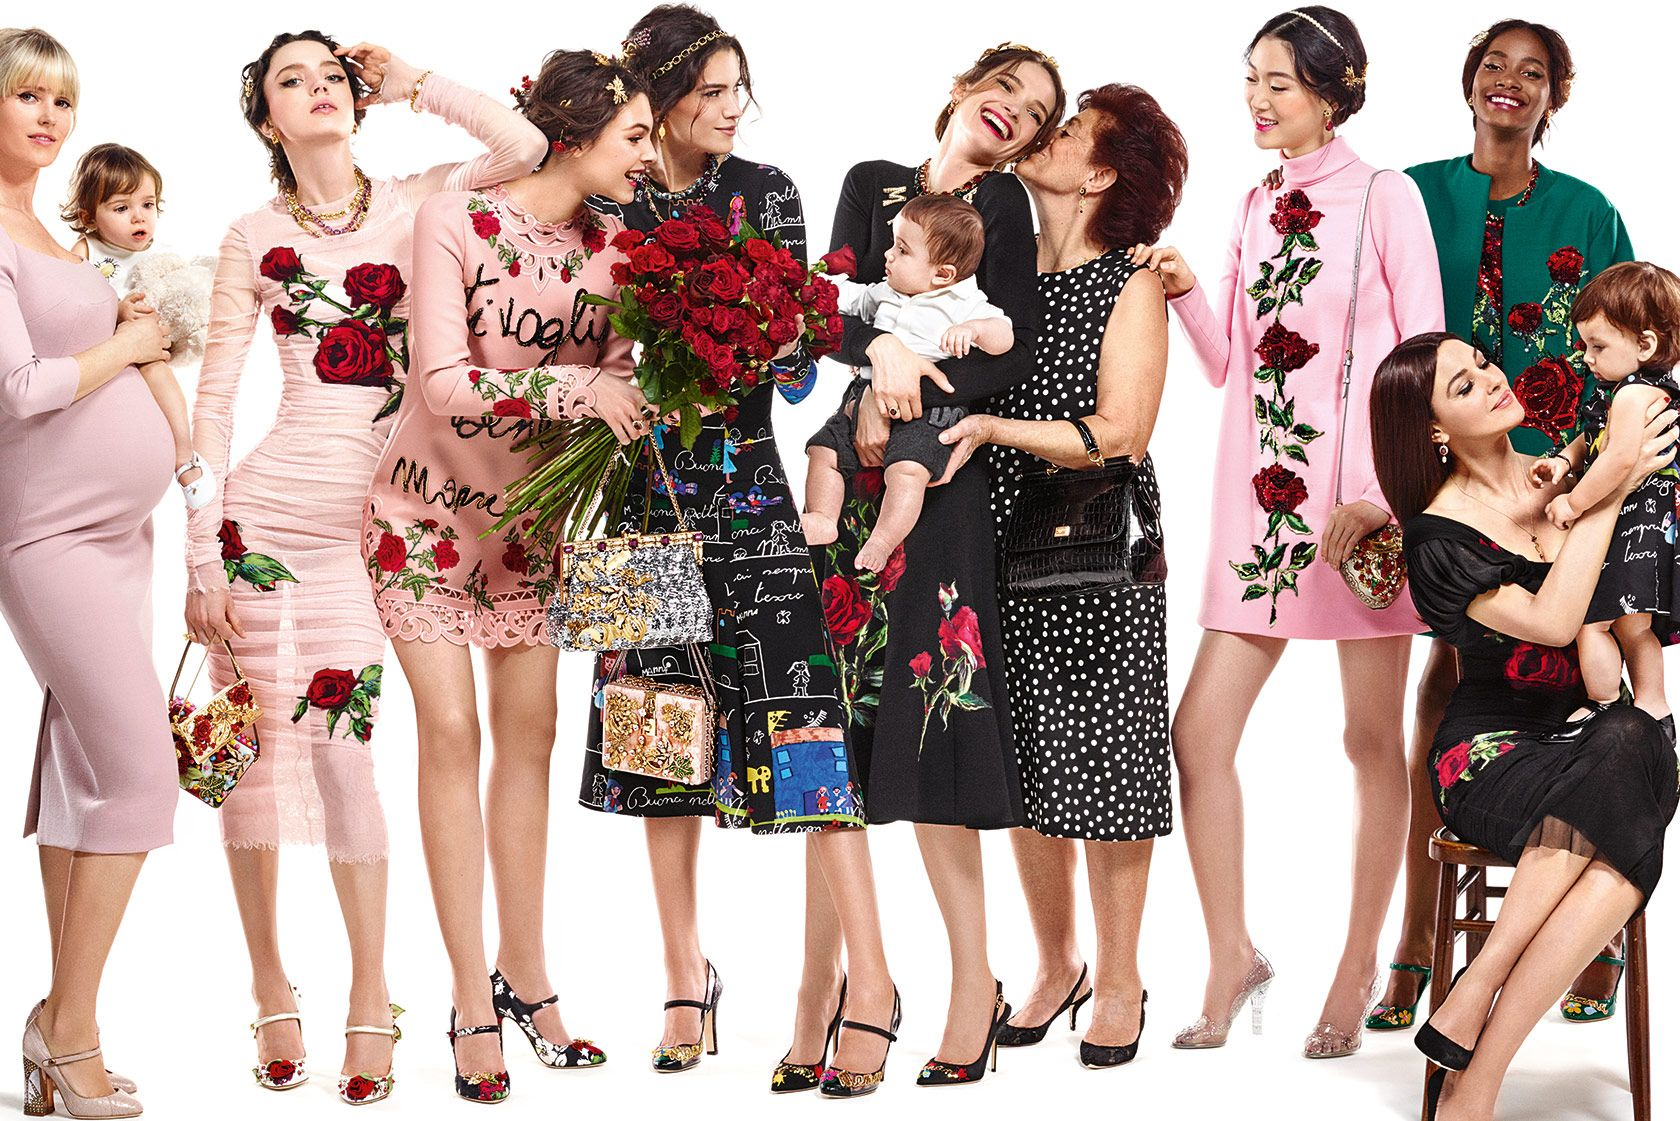 Dolce & Gabbana Autumn/Winter 2015 Ad Campaign